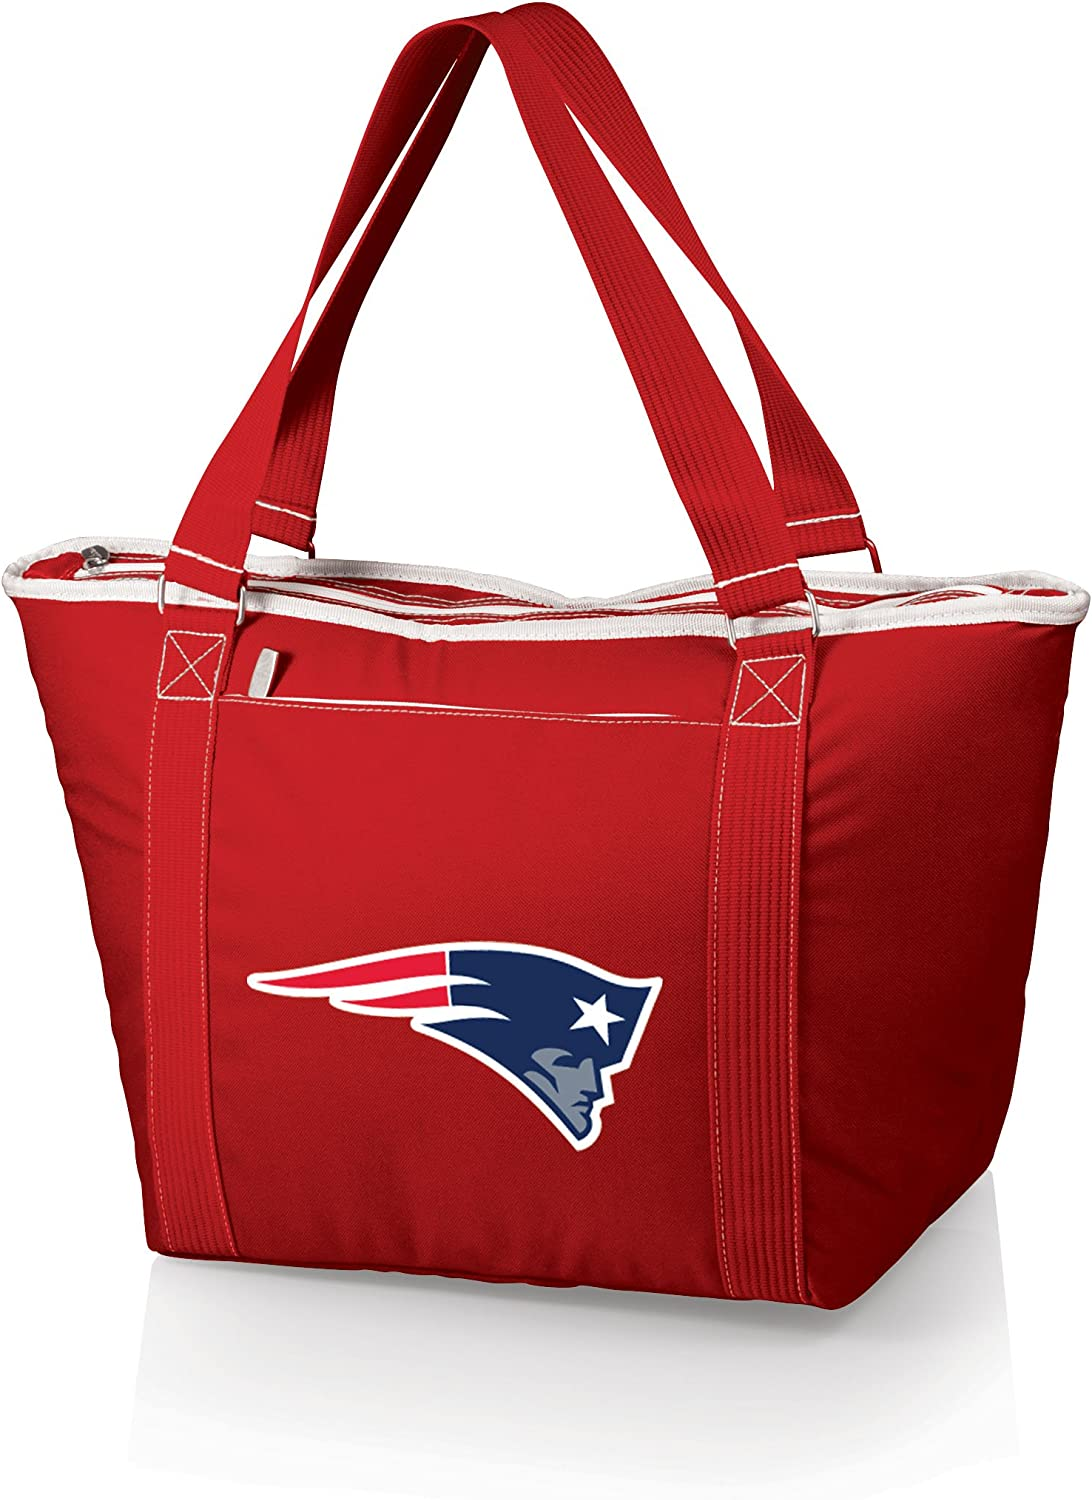 Cheap SALE Start NFL Japan Maker New England Patriots Topanga Cooler Tote Red Insulated